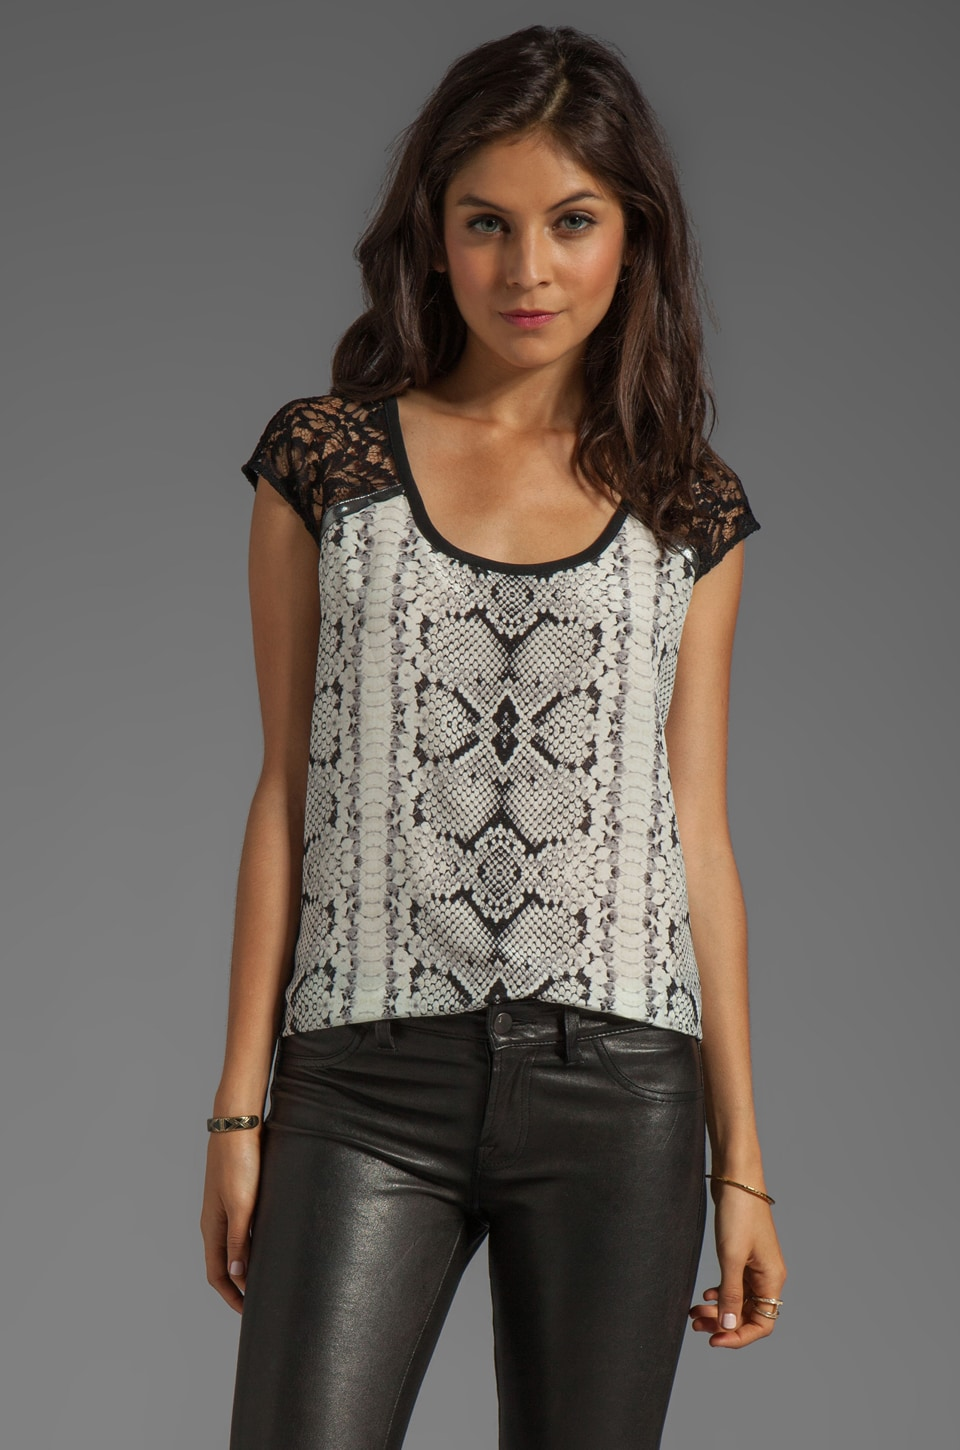 Nanette Lepore Party Time Print Festival Top in Ivory Multi